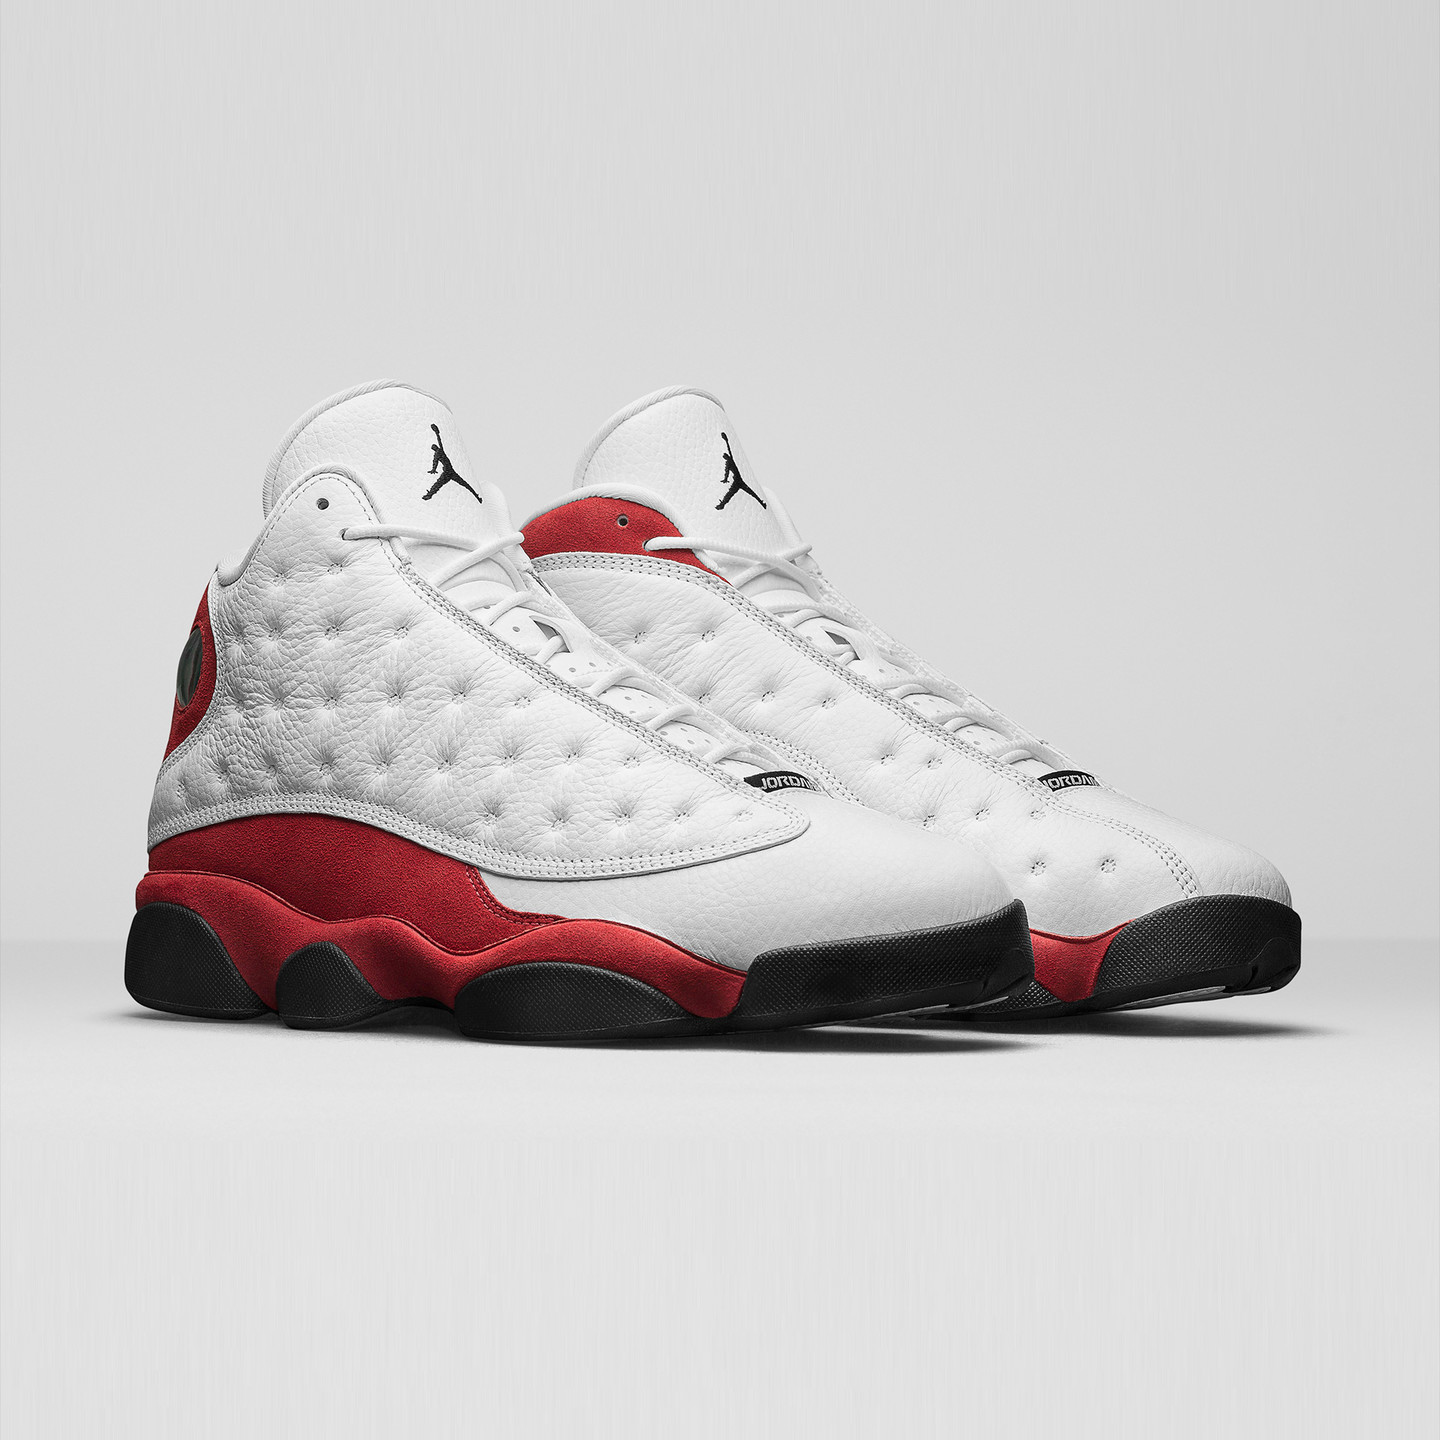 Jordan Air Jordan 13 Retro OG White / Black / Team Red 414571-122-42